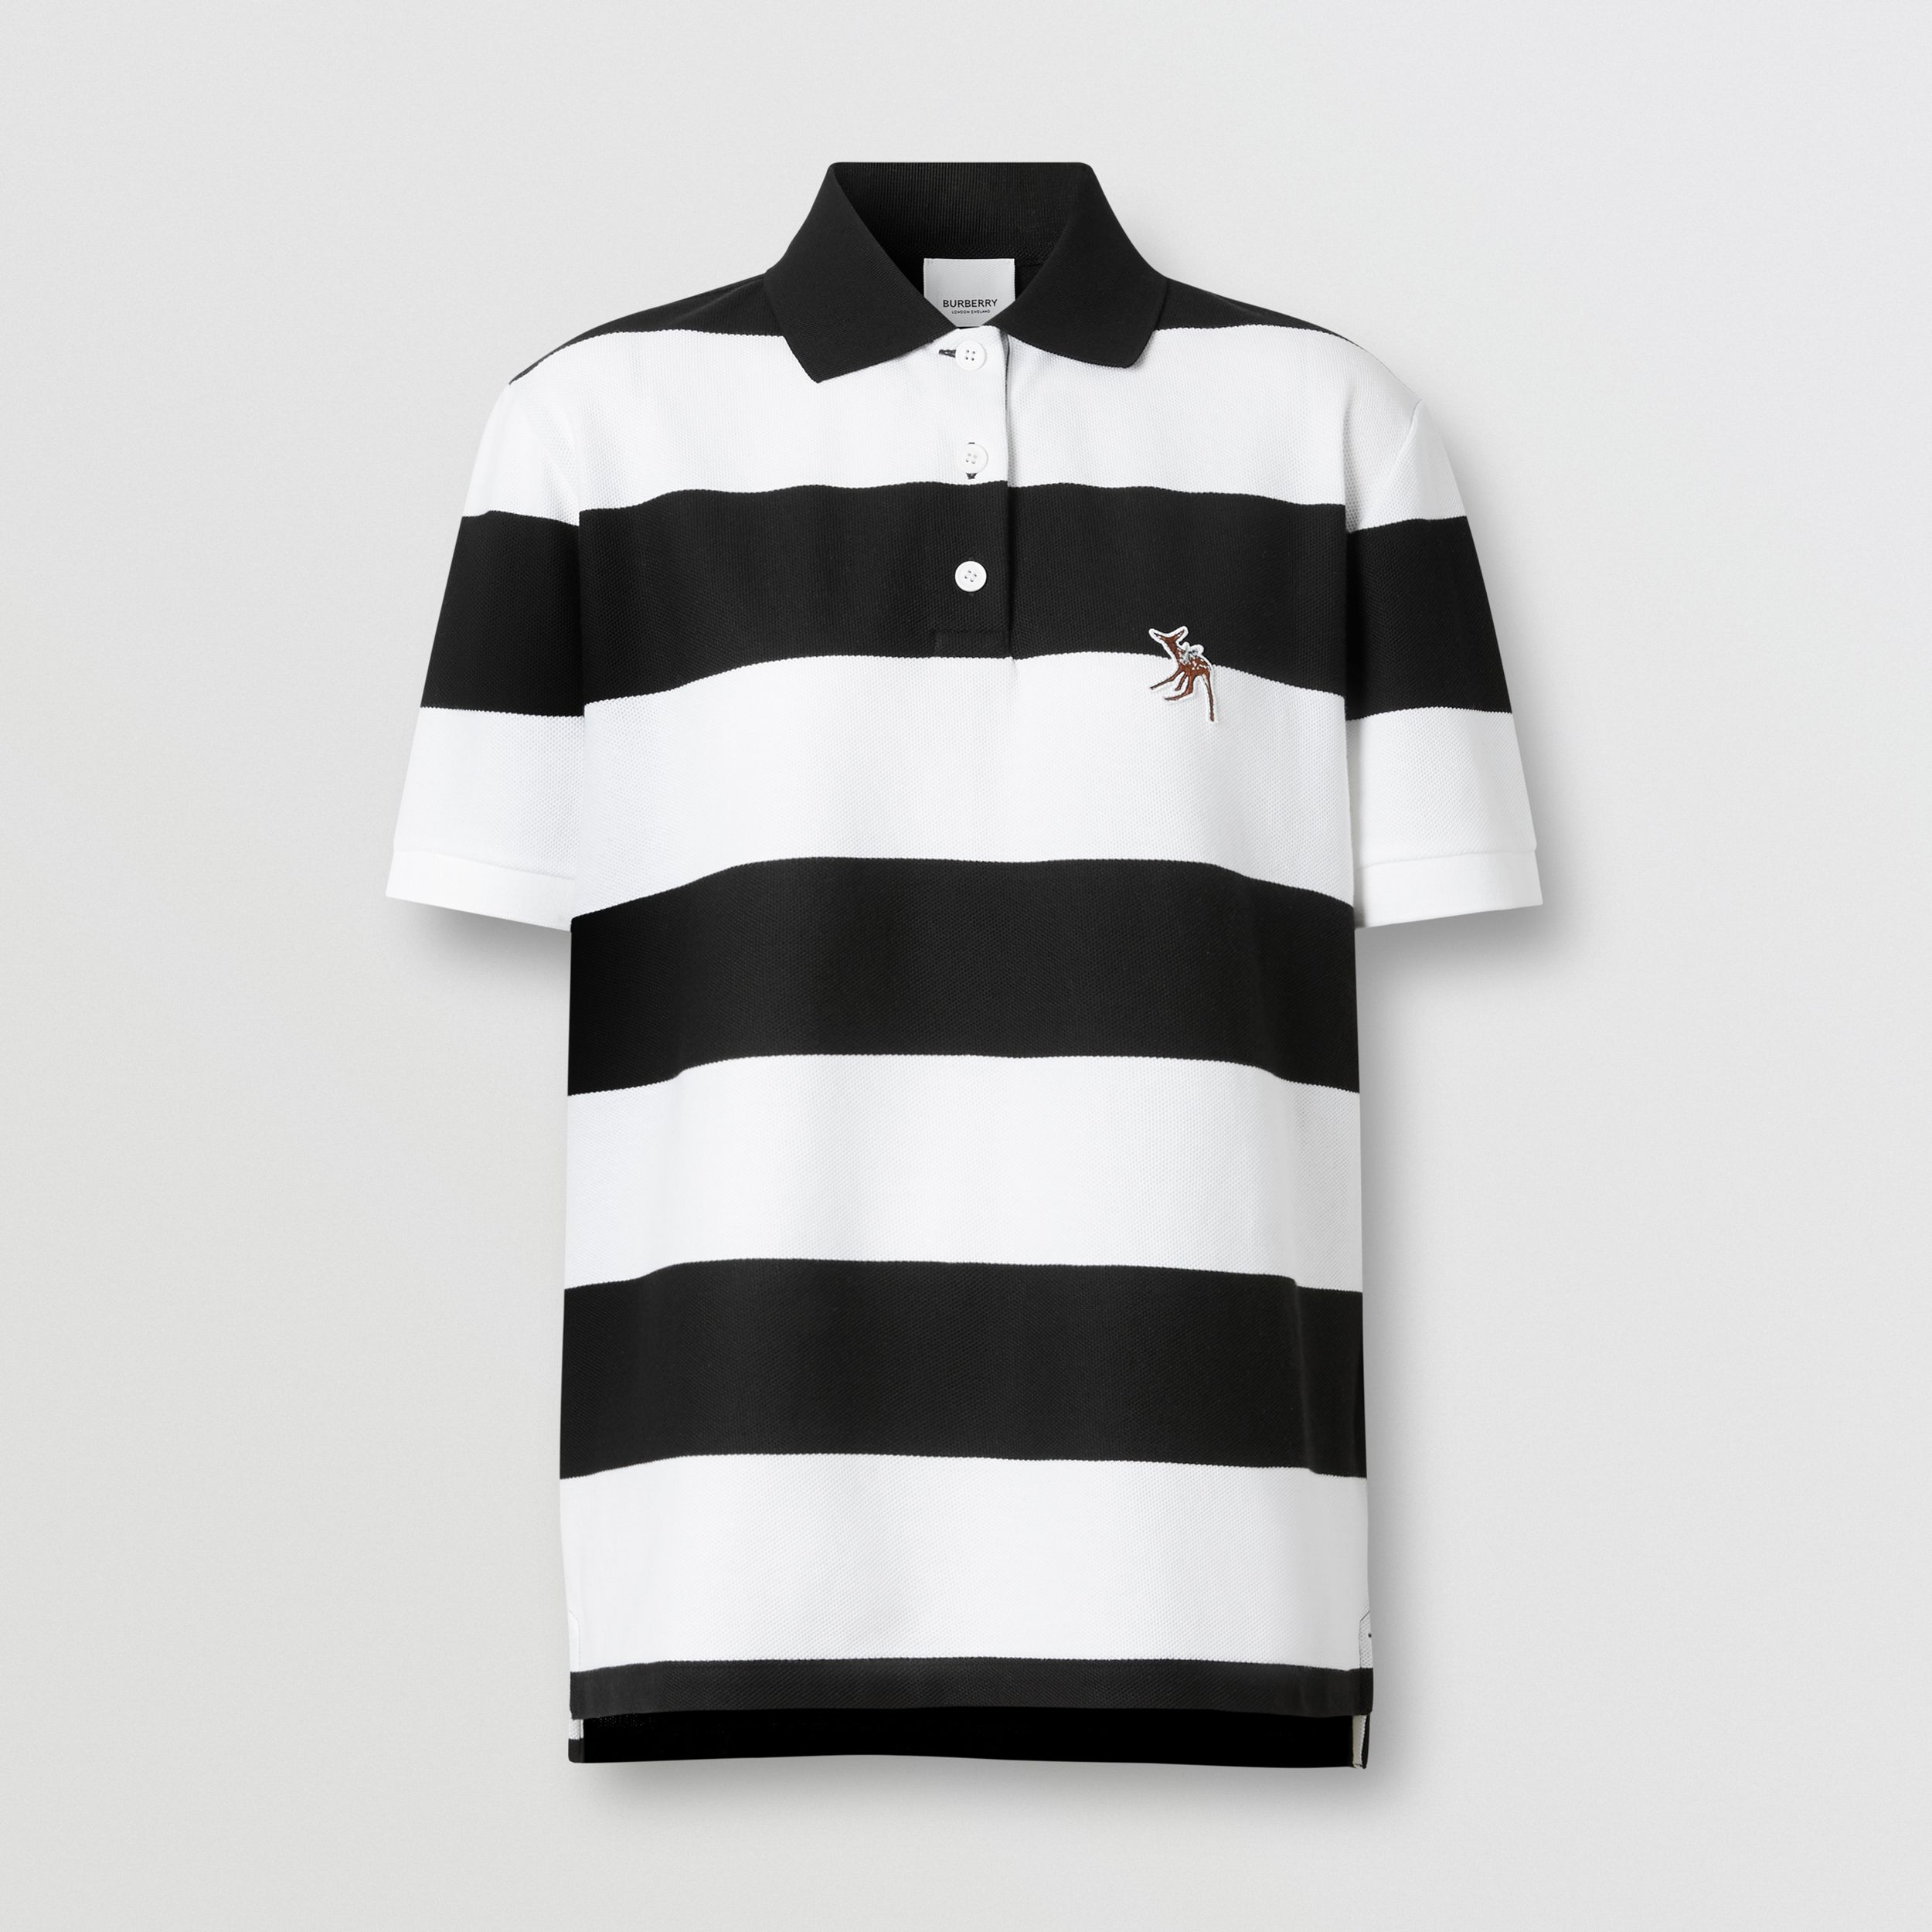 Deer Motif Striped Cotton Piqué Oversized Polo Shirt in Black - Women | Burberry - 4